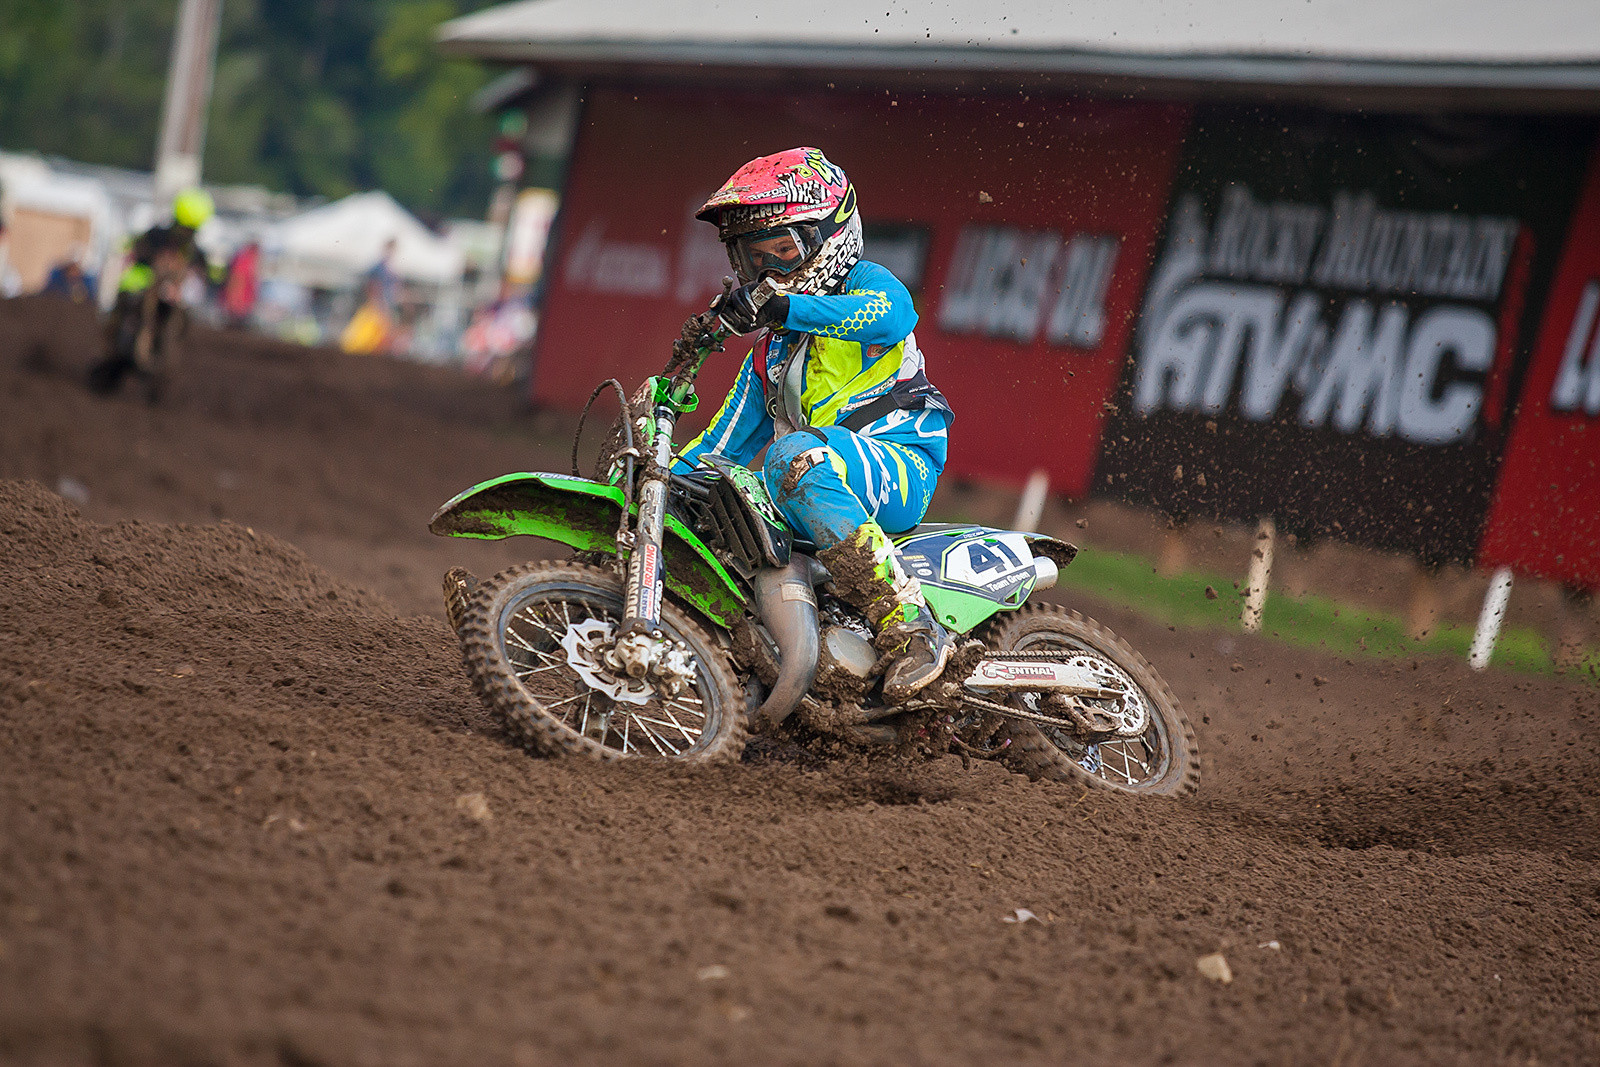 Nicholas Romano is one of the many standout minicycle riders making a fine impression here at the 36th Annual Rocky Mountain ATV/MC AMA Amateur National Motocross Championships at Loretta Lynn's.